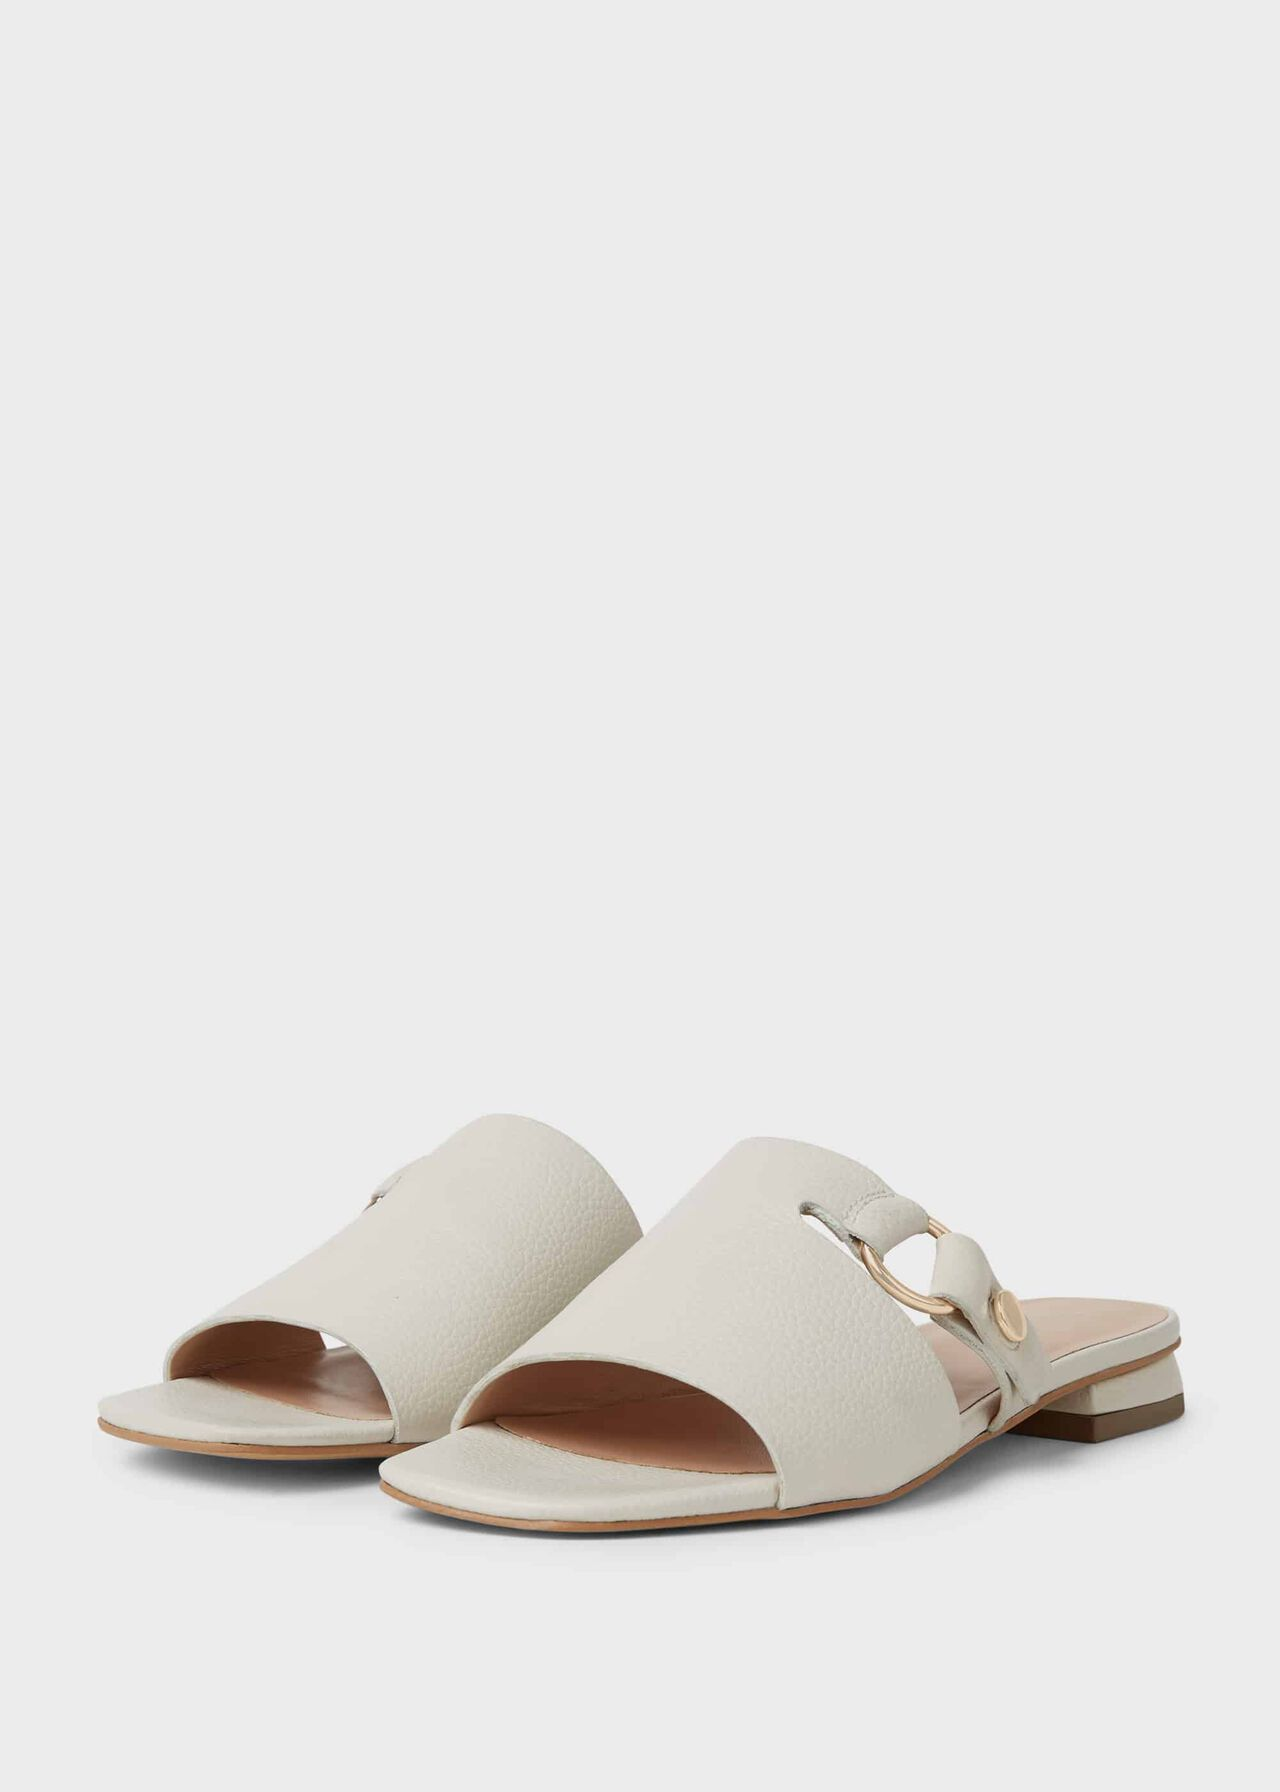 Lily Leather Sandals White